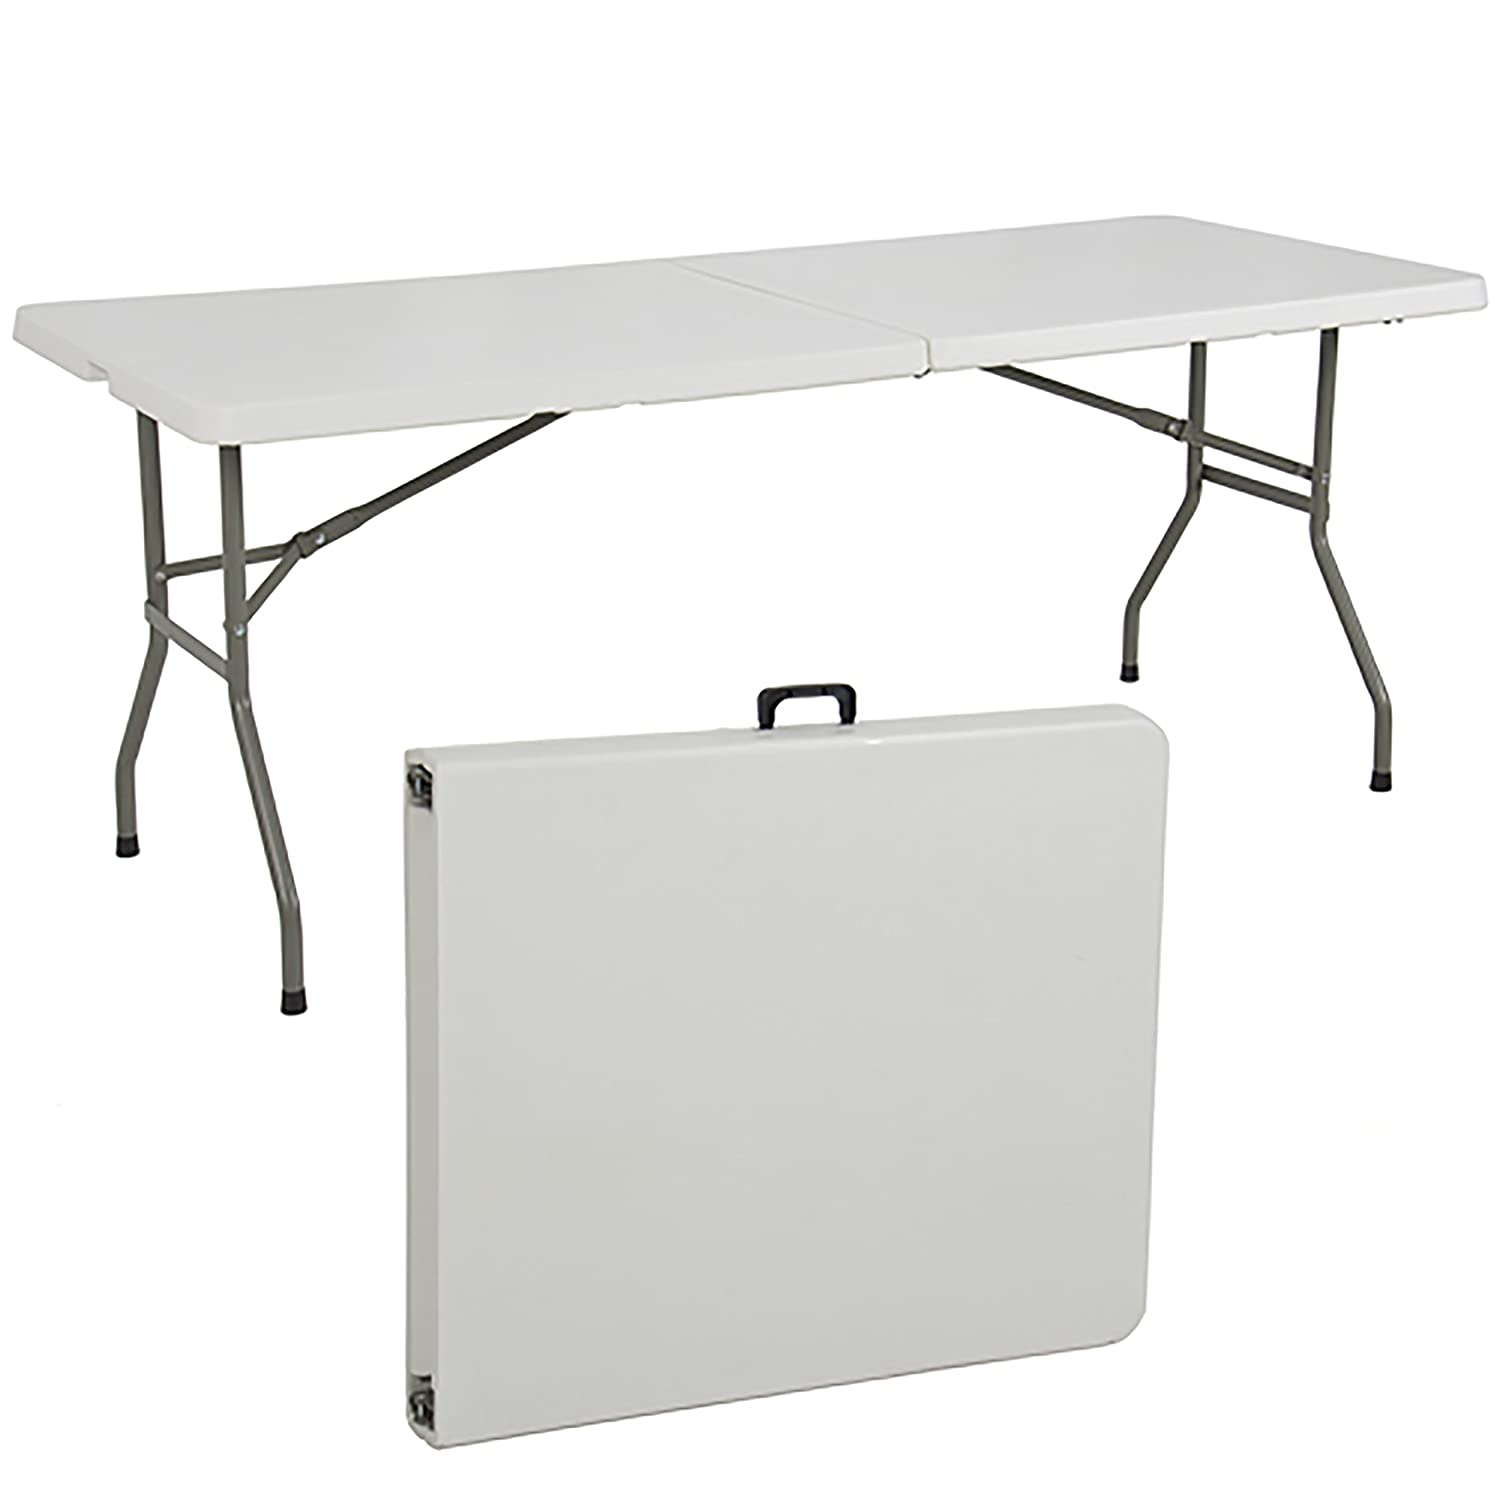 Best ChoiceProducts Folding Table Portable Plastic Indoor Outdoor Picnic Party Dining Camp Tables, 6: Amazon.es: Jardín